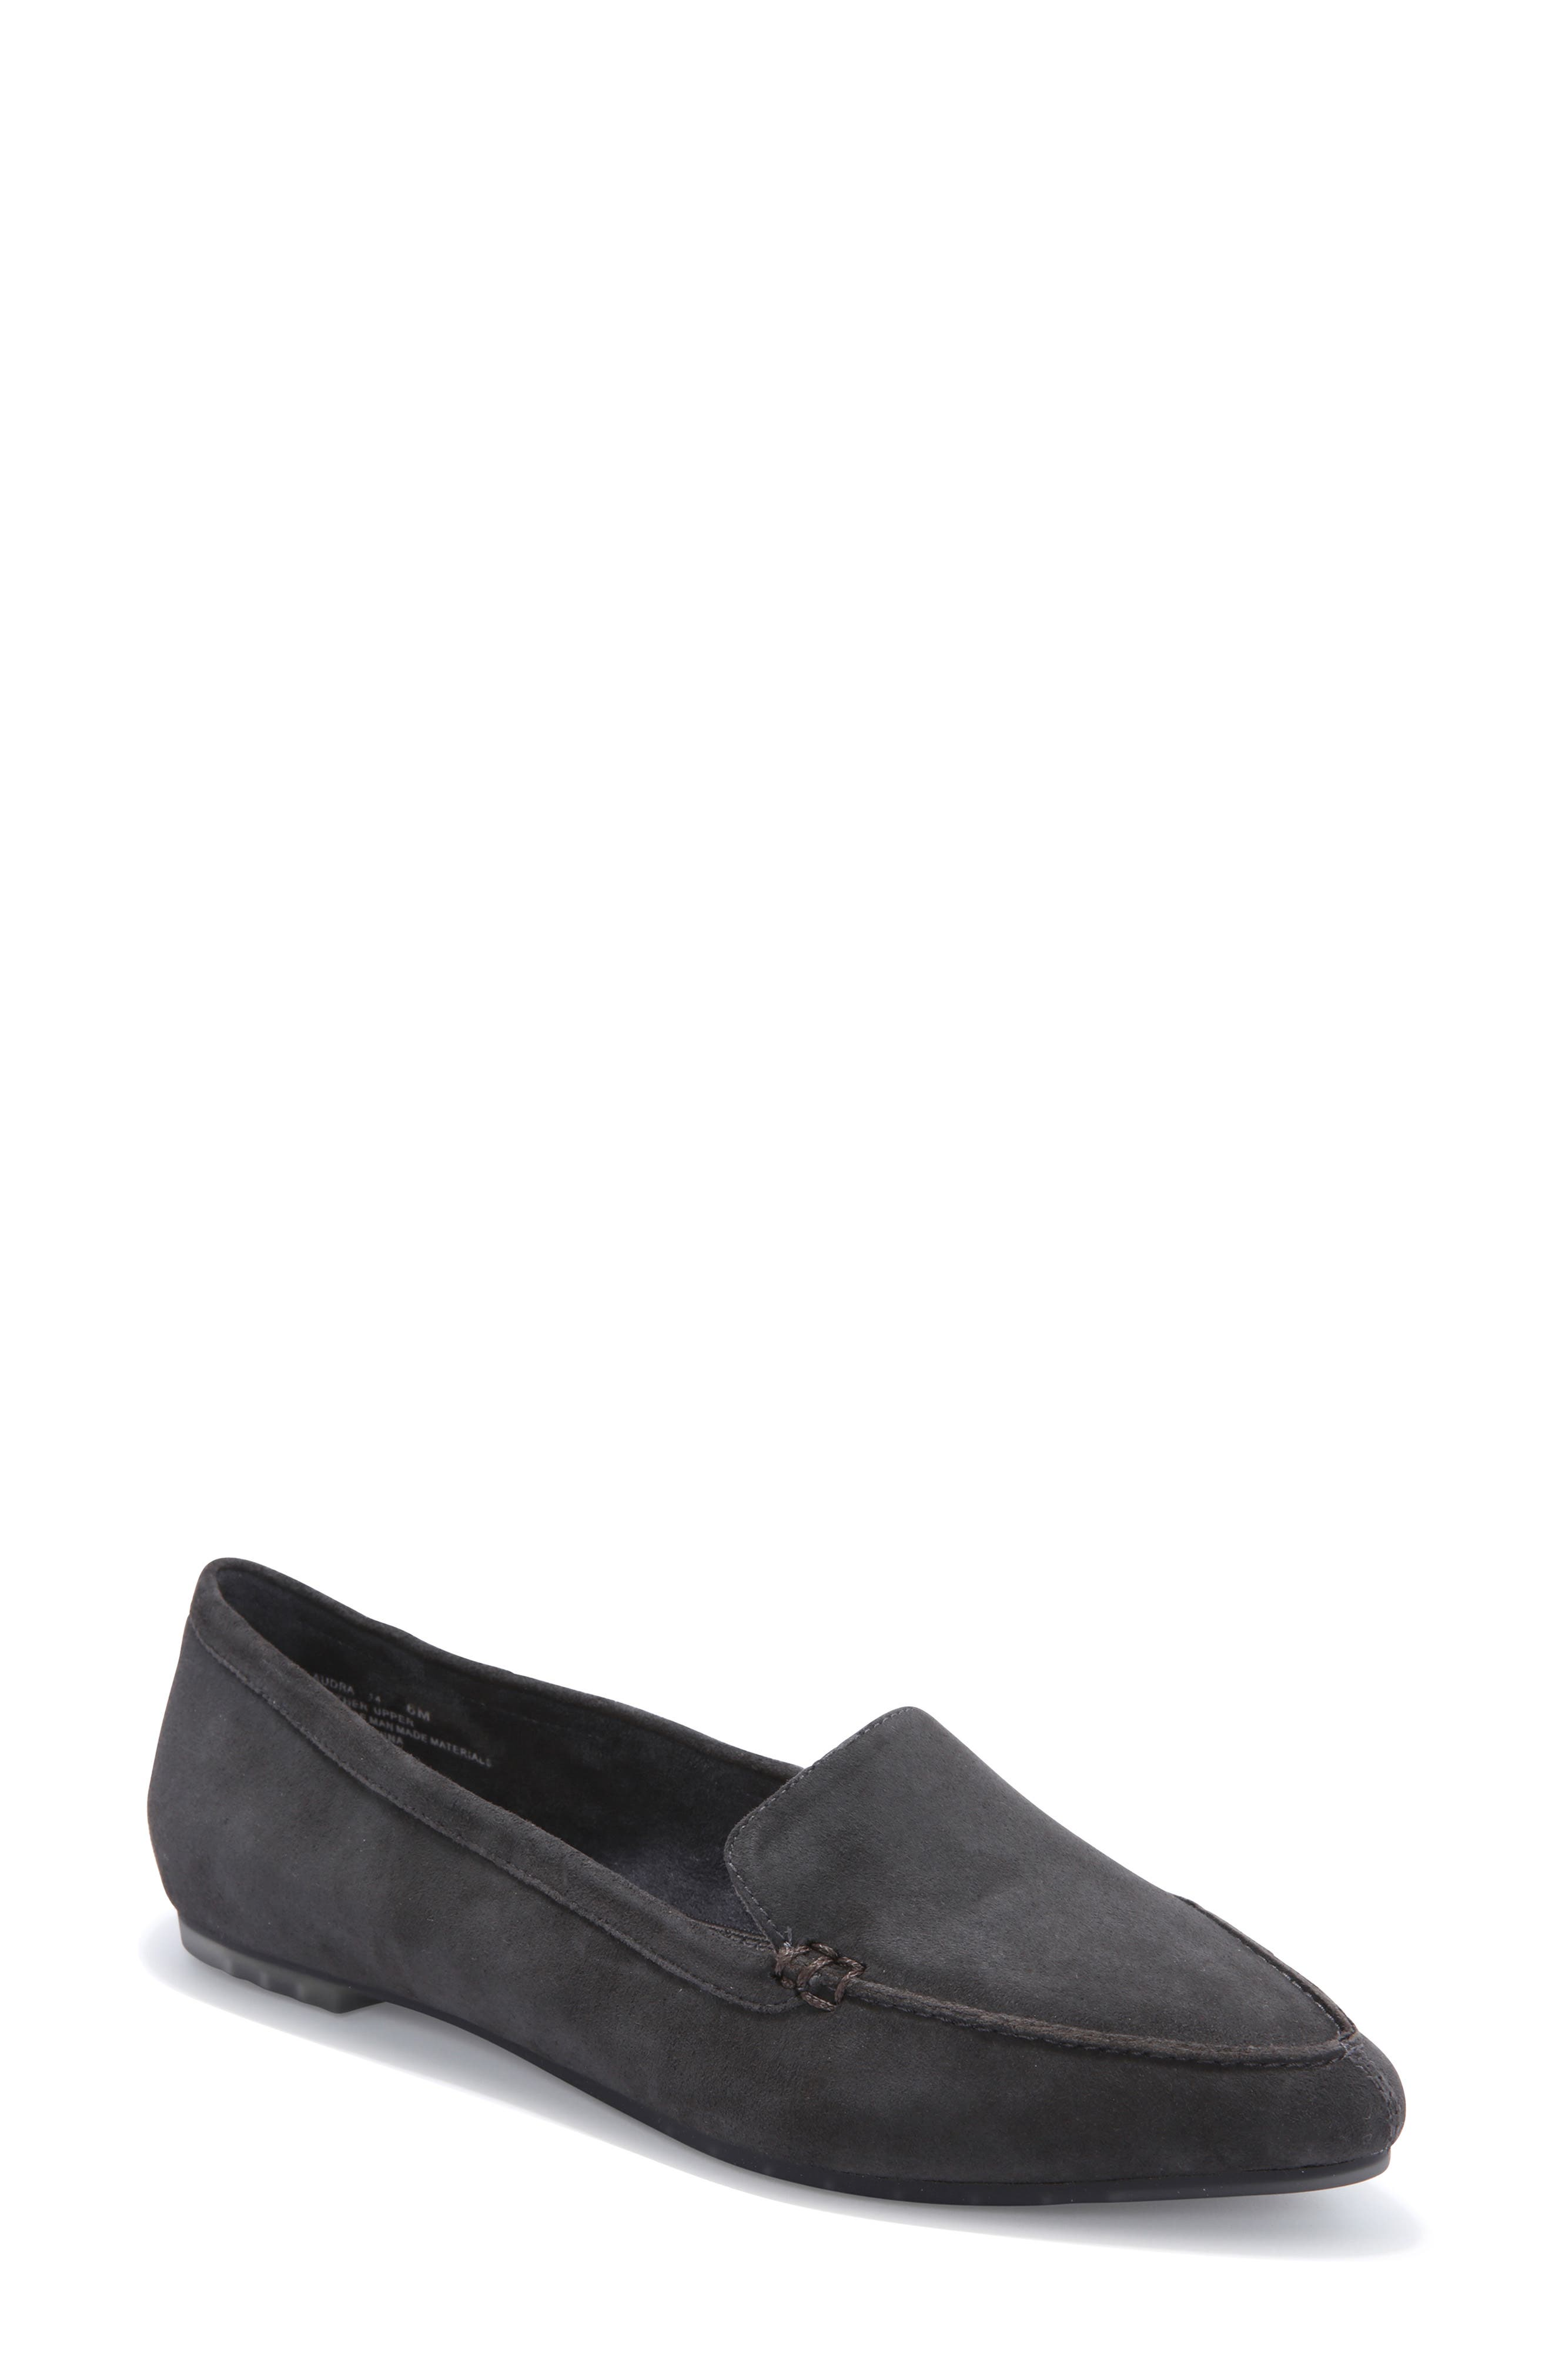 Me Too Audra Loafer Flat, Grey